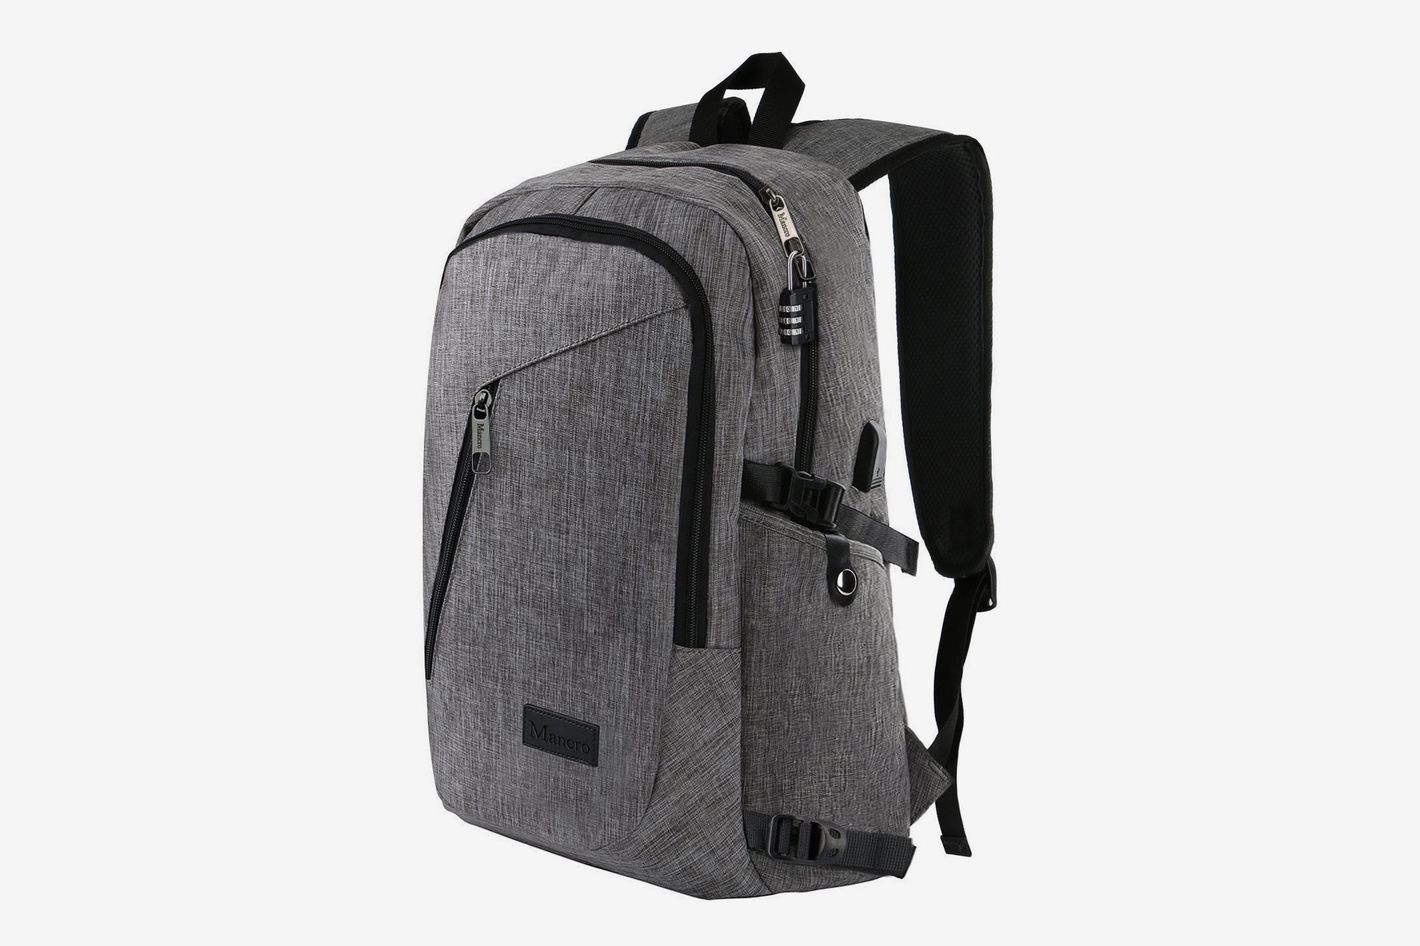 feb05e4c19133c The 14 Best Laptop Backpacks on Amazon 2019